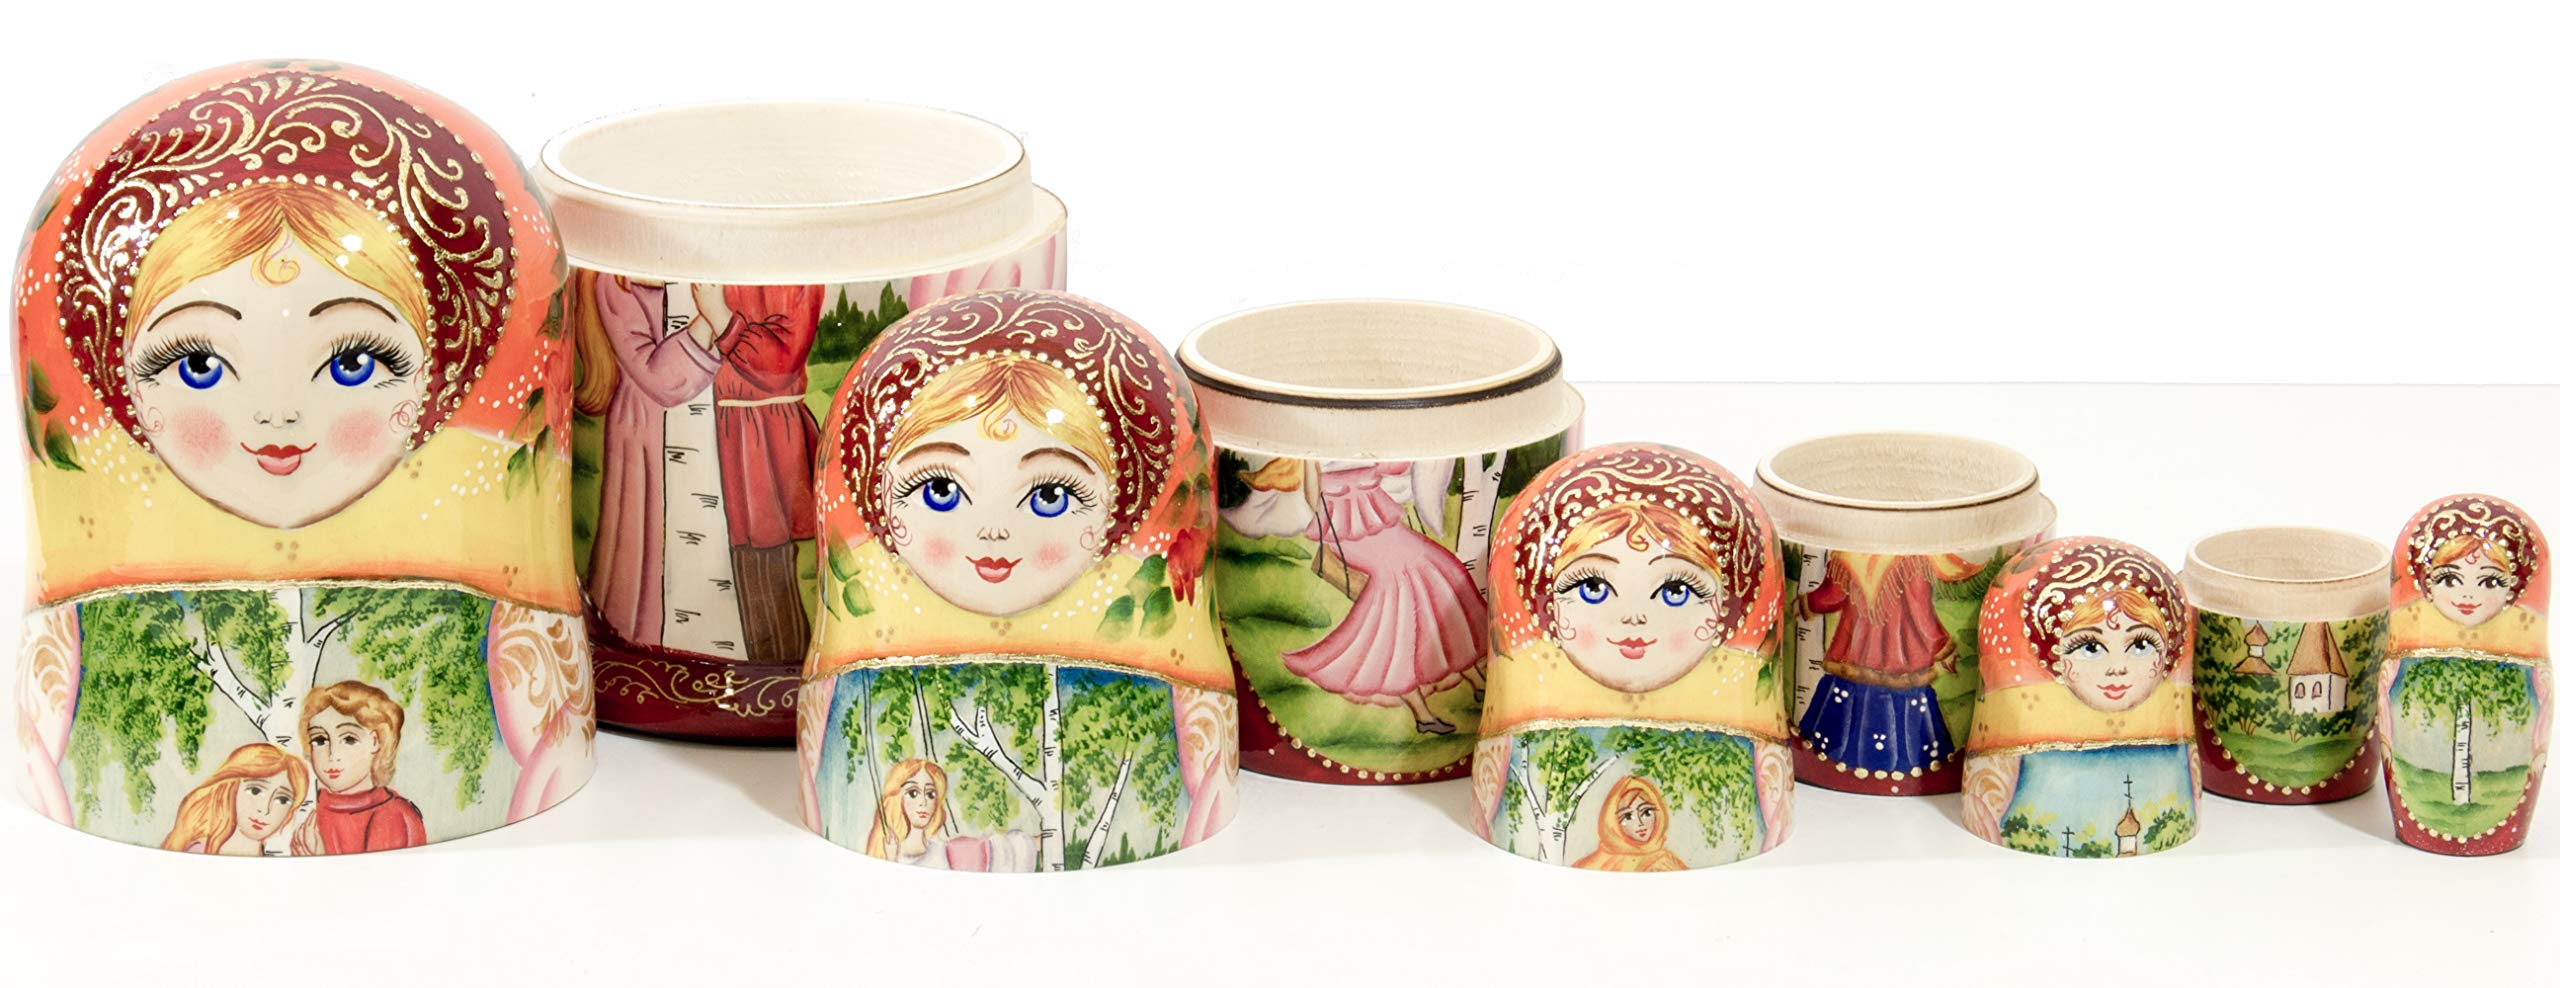 Russian Nesting Doll - Village Scenes - Hand Painted in Russia - 5 Color/Size Variations - Traditional Matryoshka Babushka (6.75``(5 Dolls in 1), Scene L) by craftsfromrussia (Image #7)